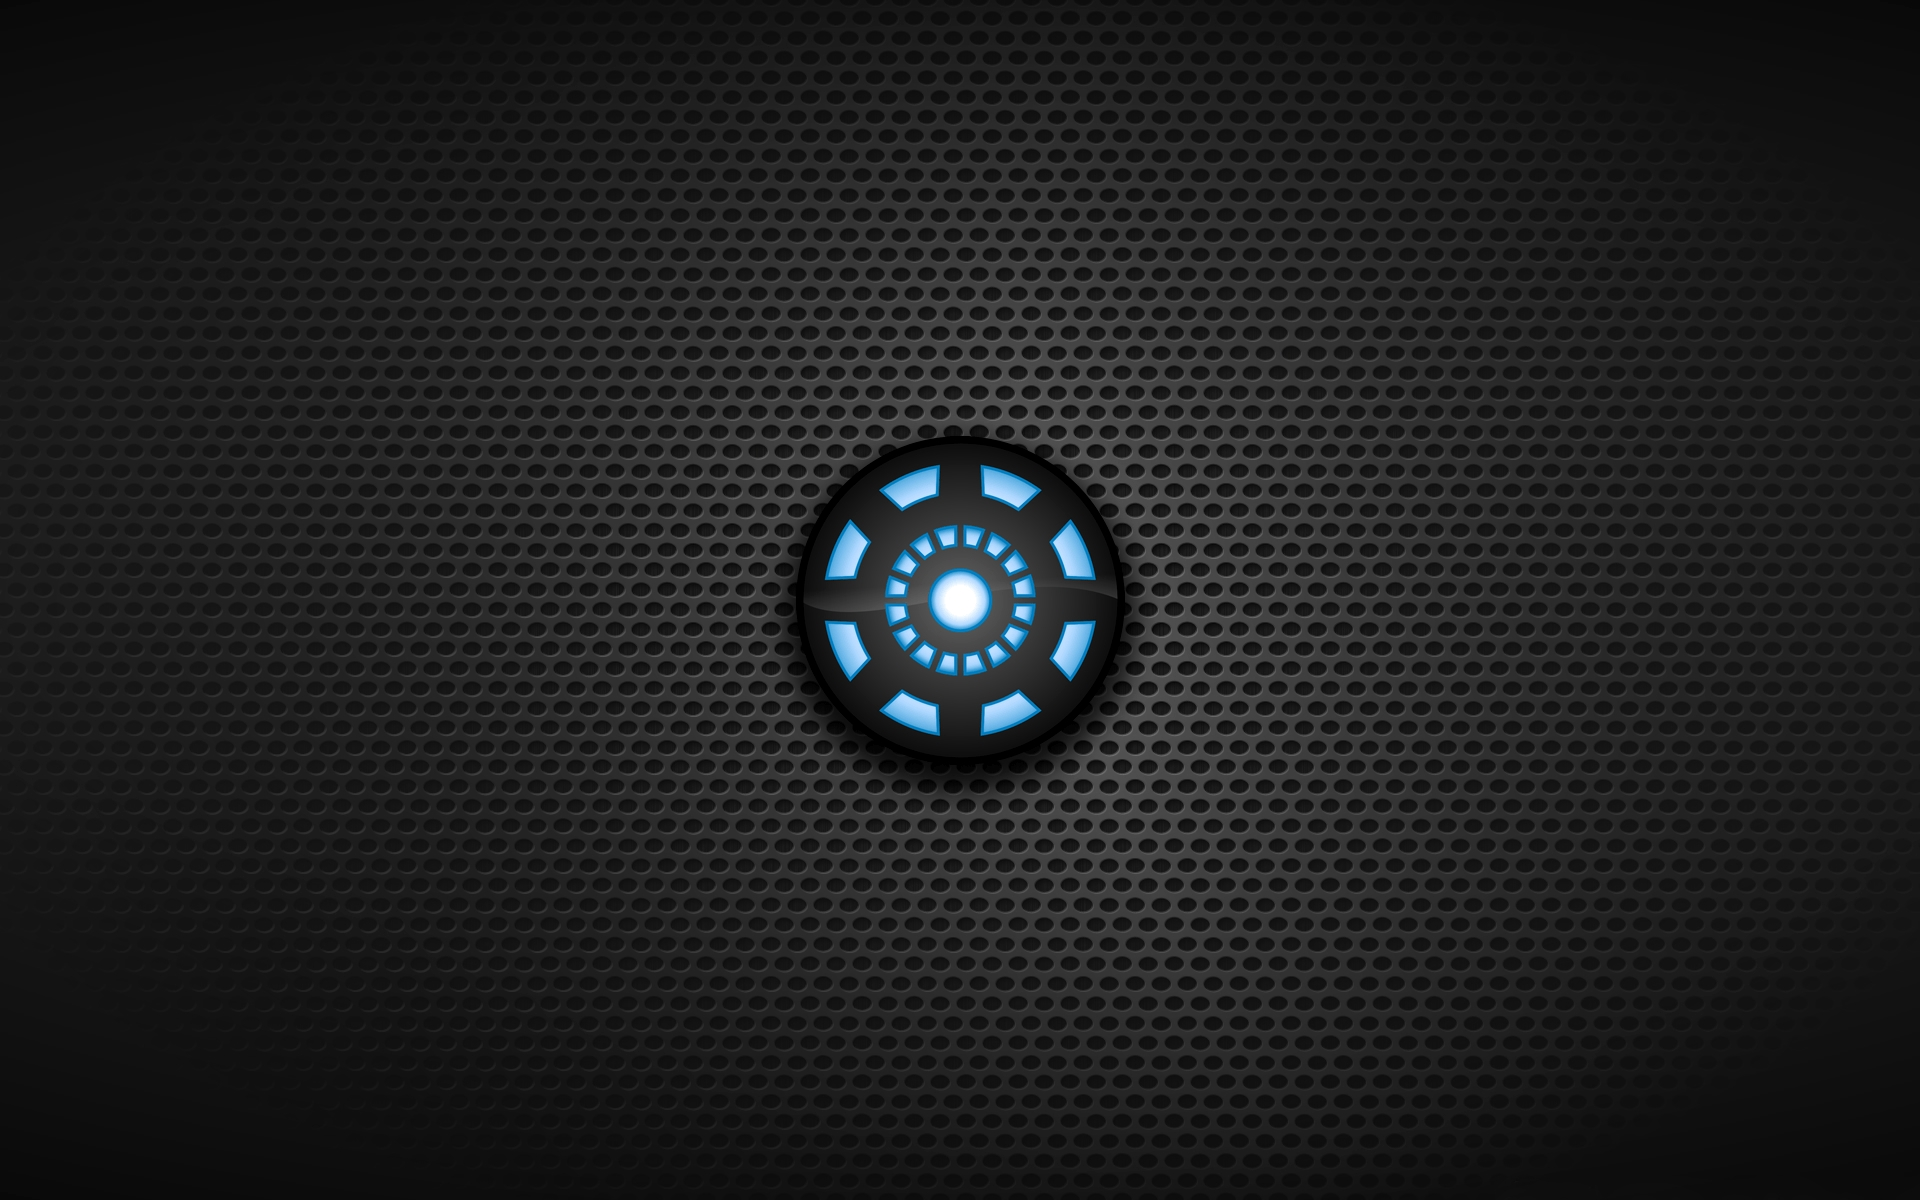 iron man logo wallpapers - wallpaper cave